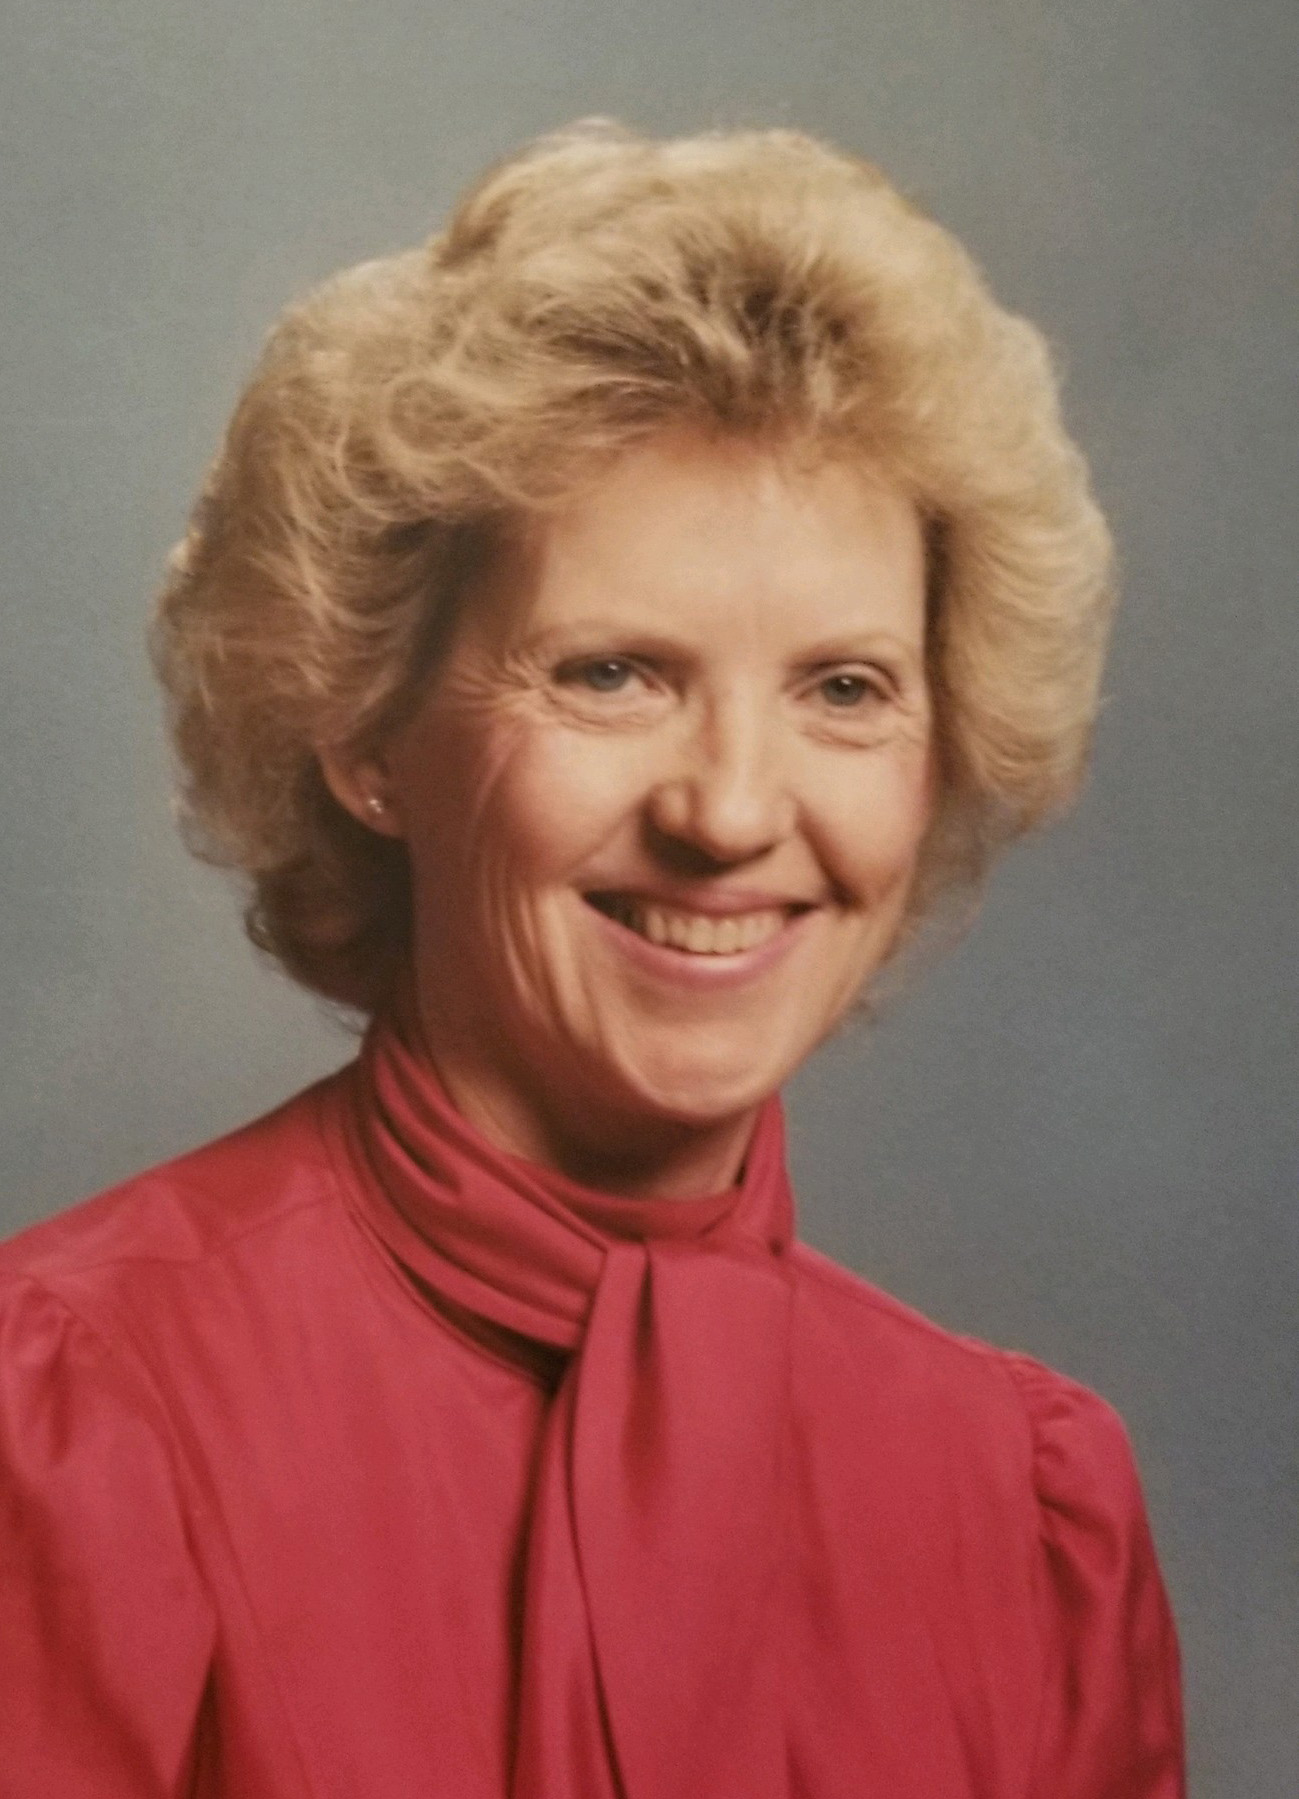 Betty J. (Bryant) Wilkinson, age 82, of Dale